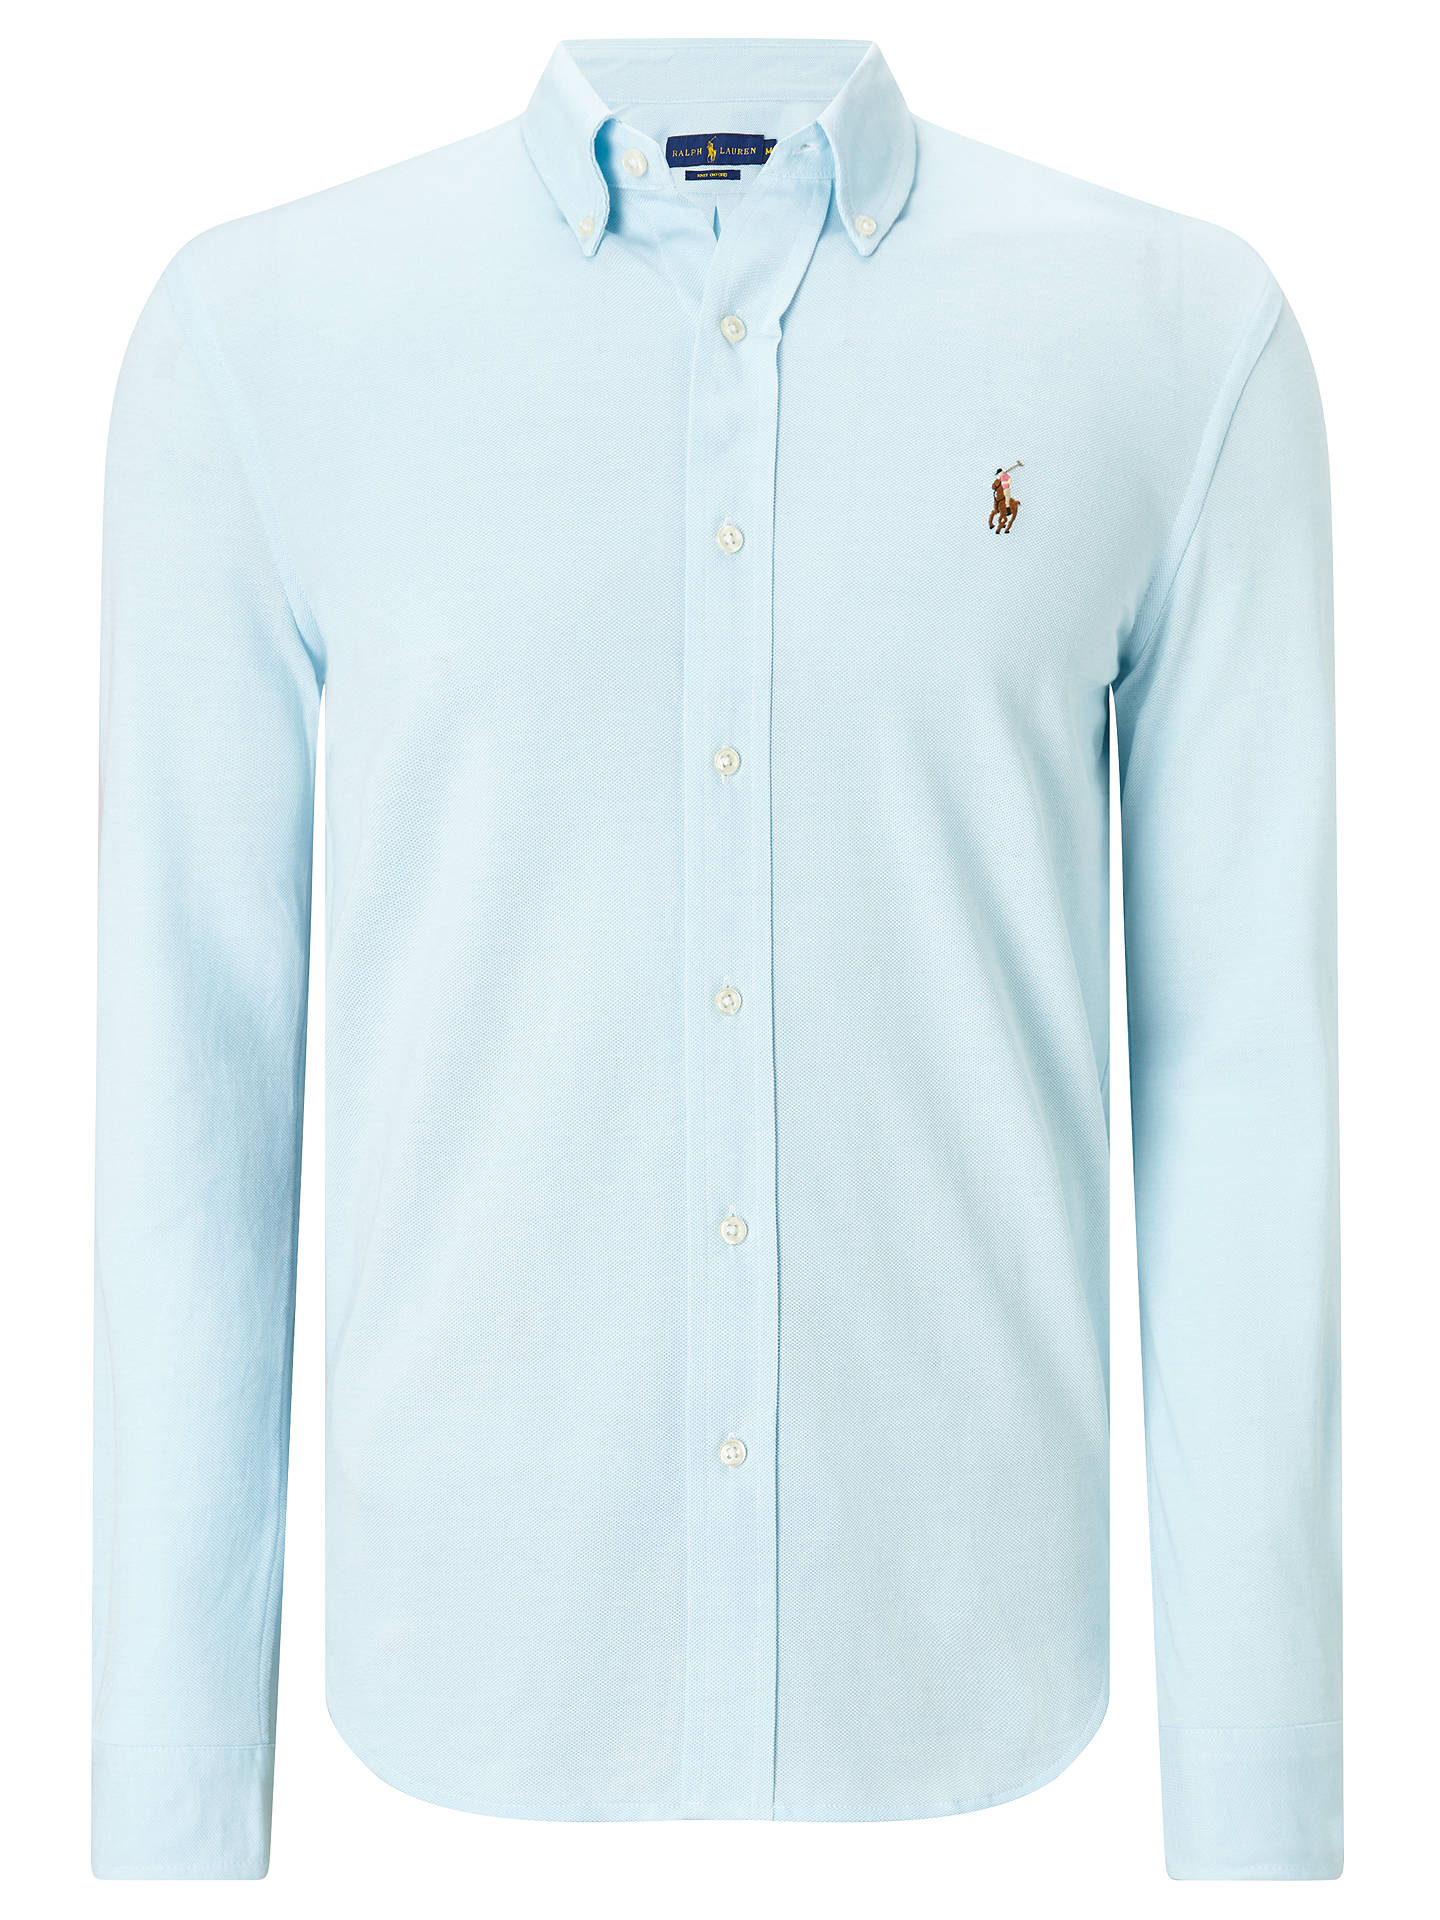 86ff9e98 Buy Polo Ralph Lauren Knit Oxford Shirt, Acadia Blue/White, S Online at ...